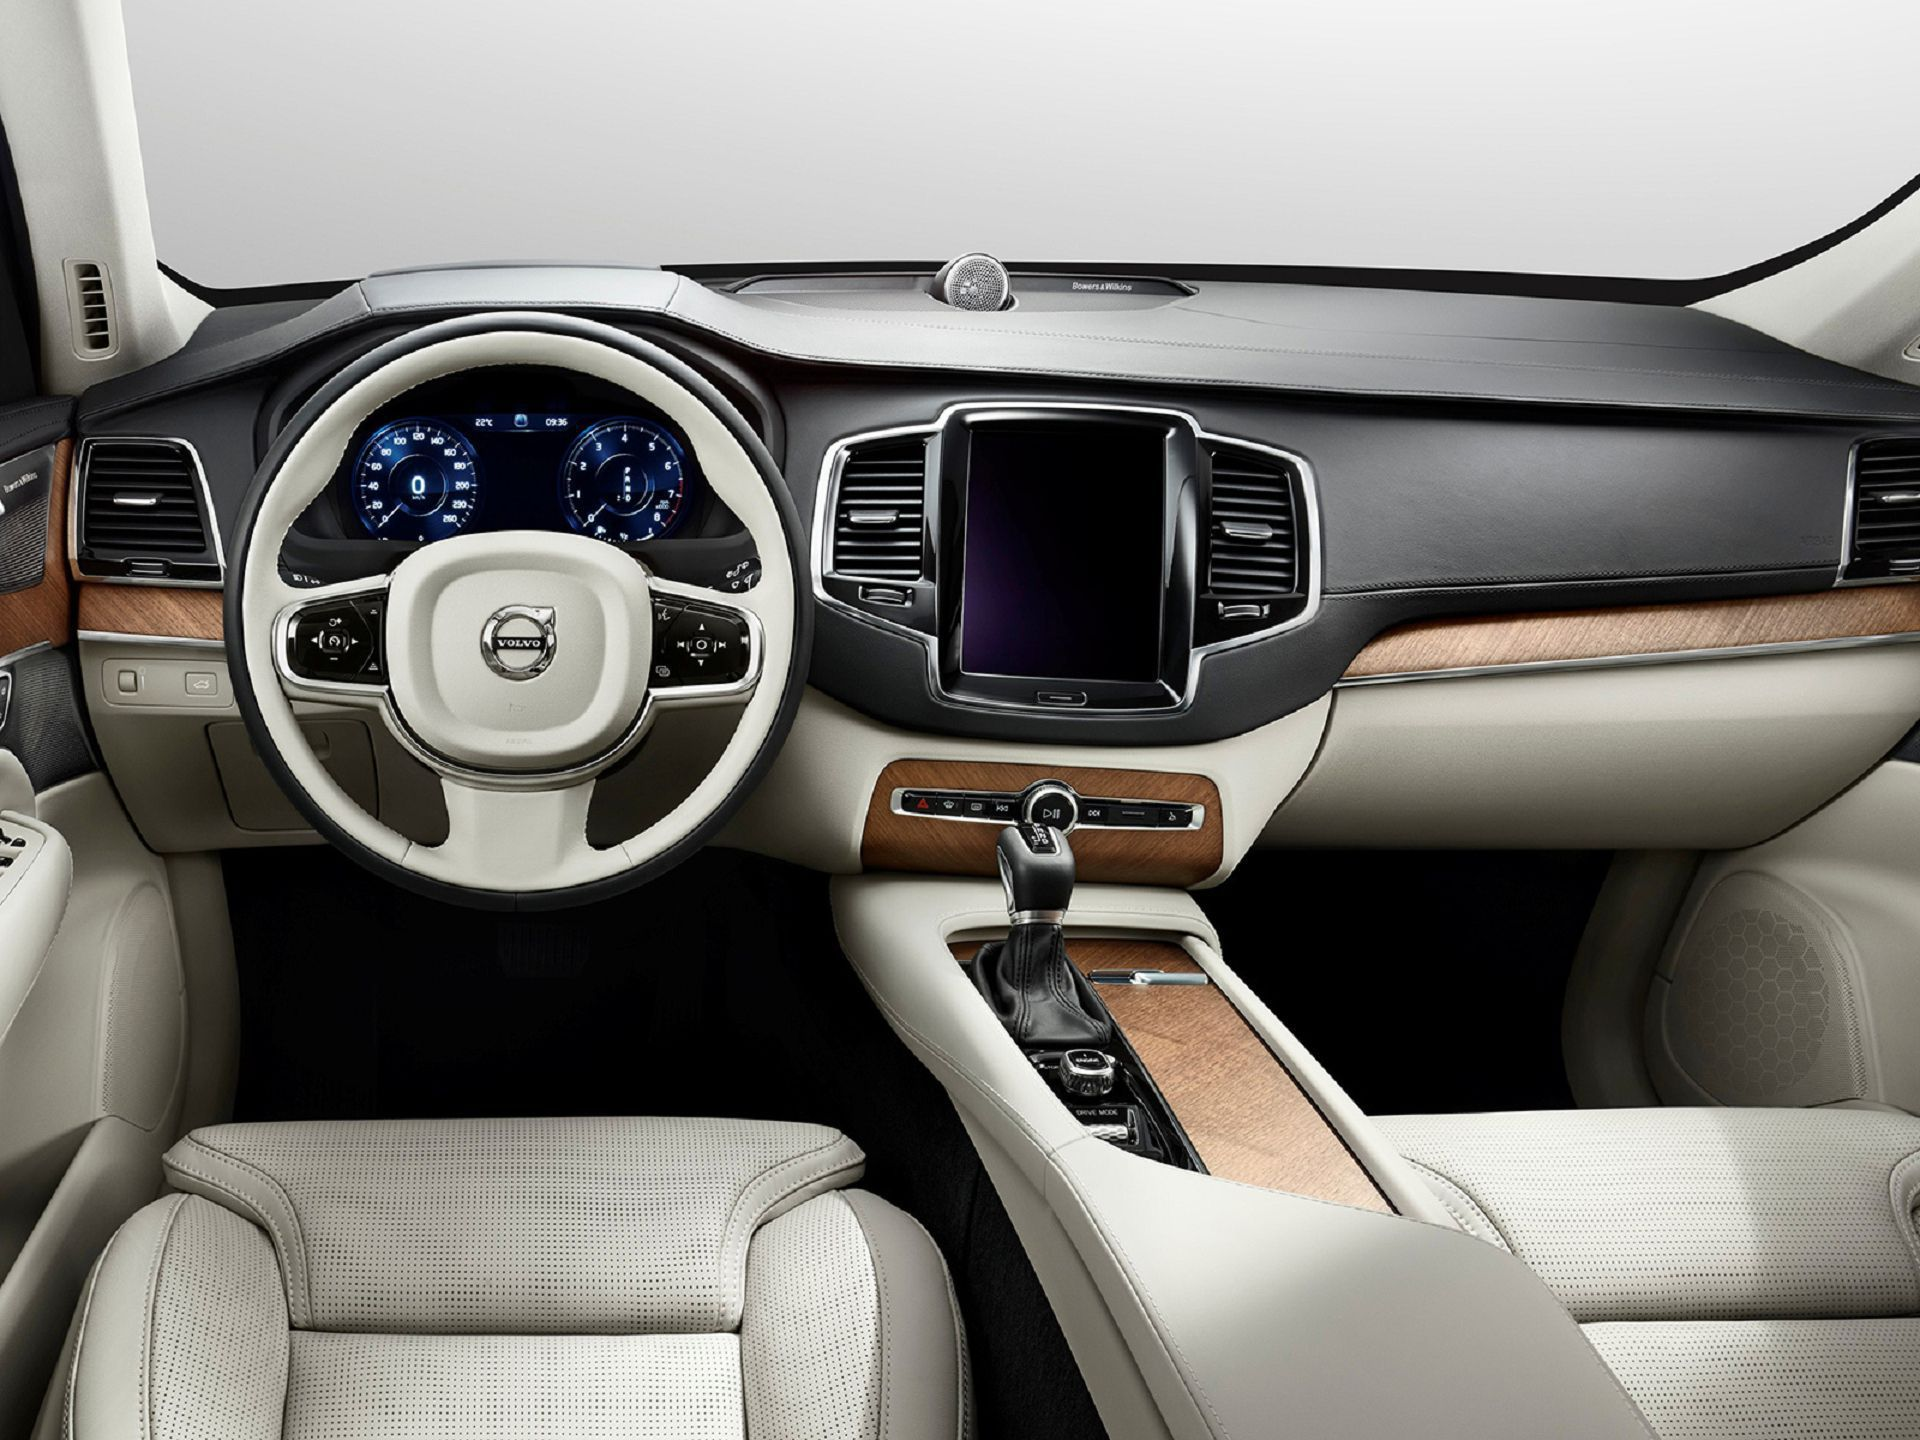 Volvo Xc90 Widescreen